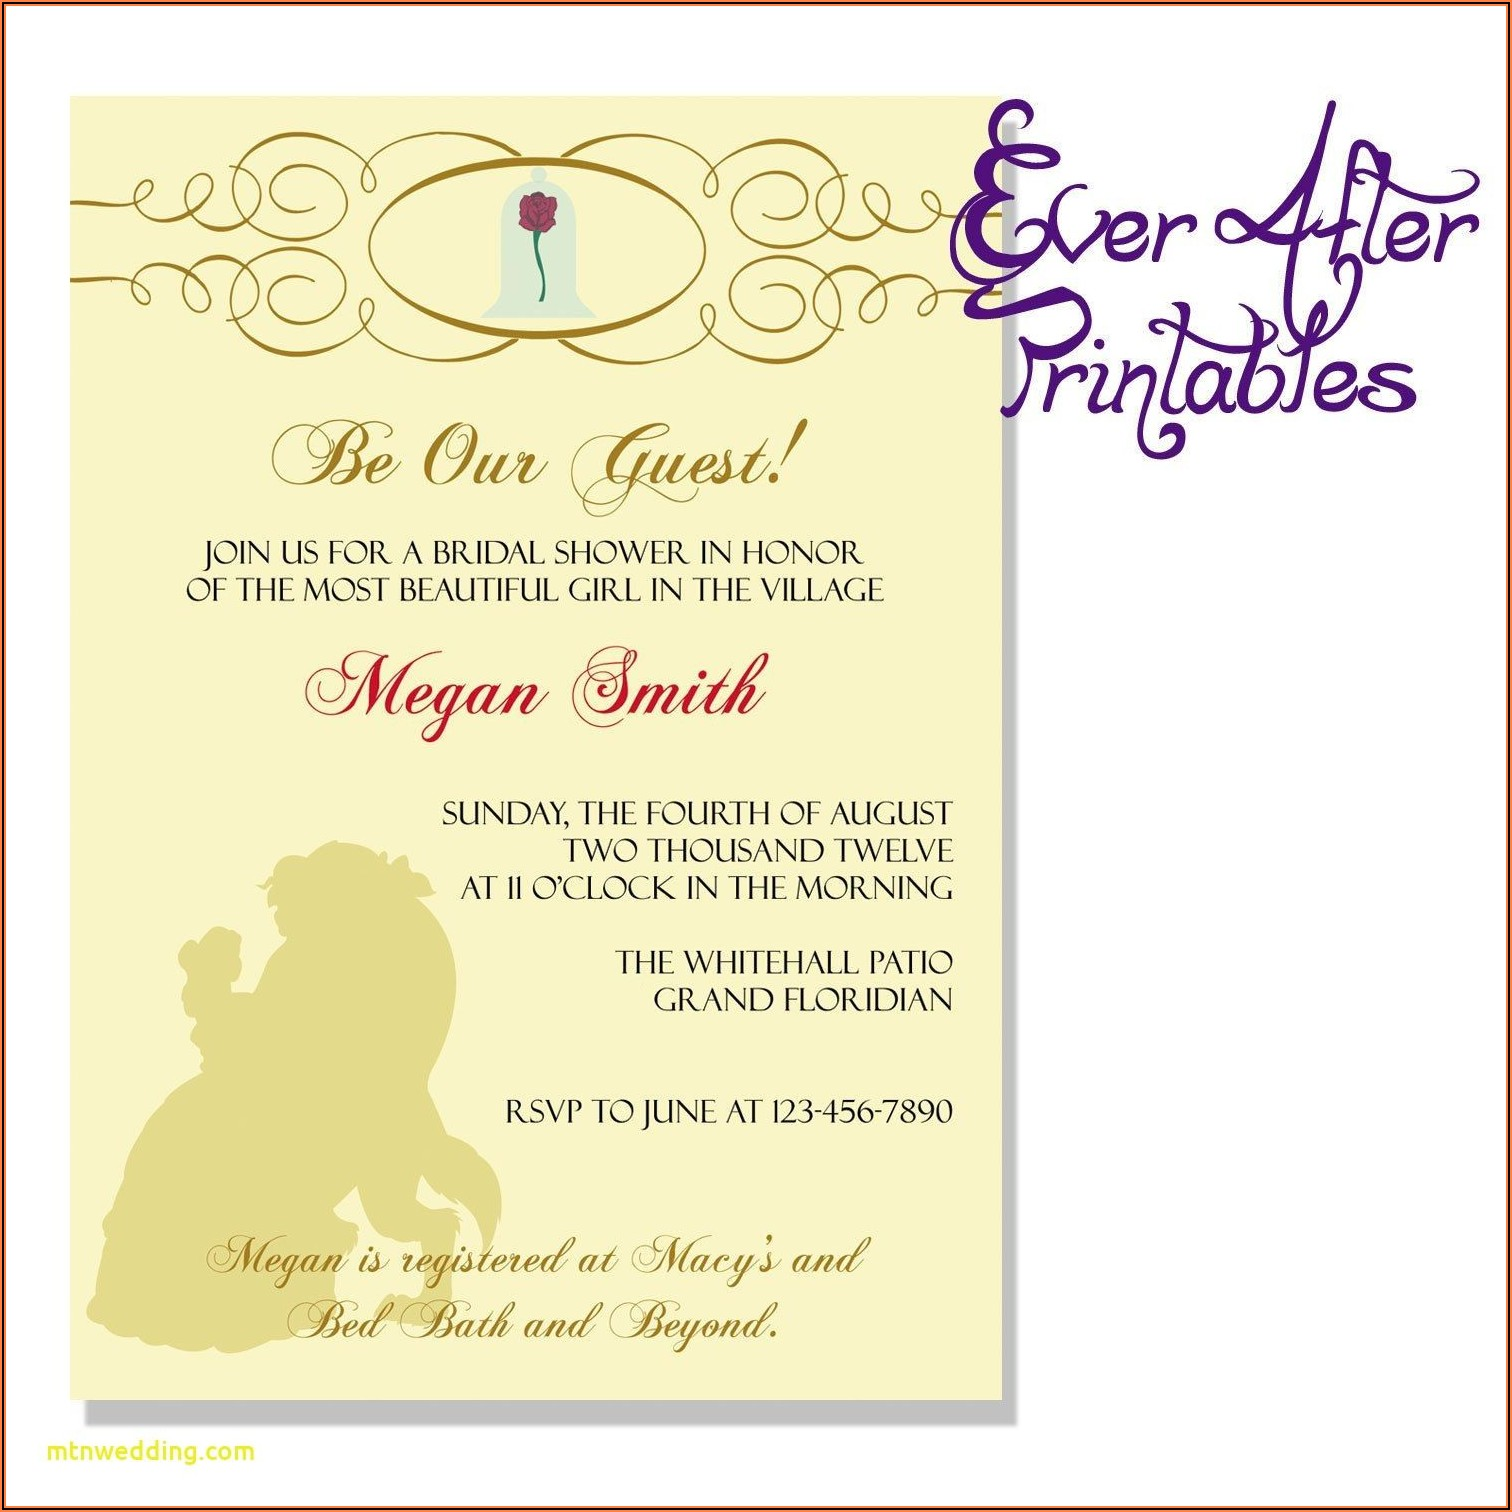 Elegant Wedding Invitations Uk